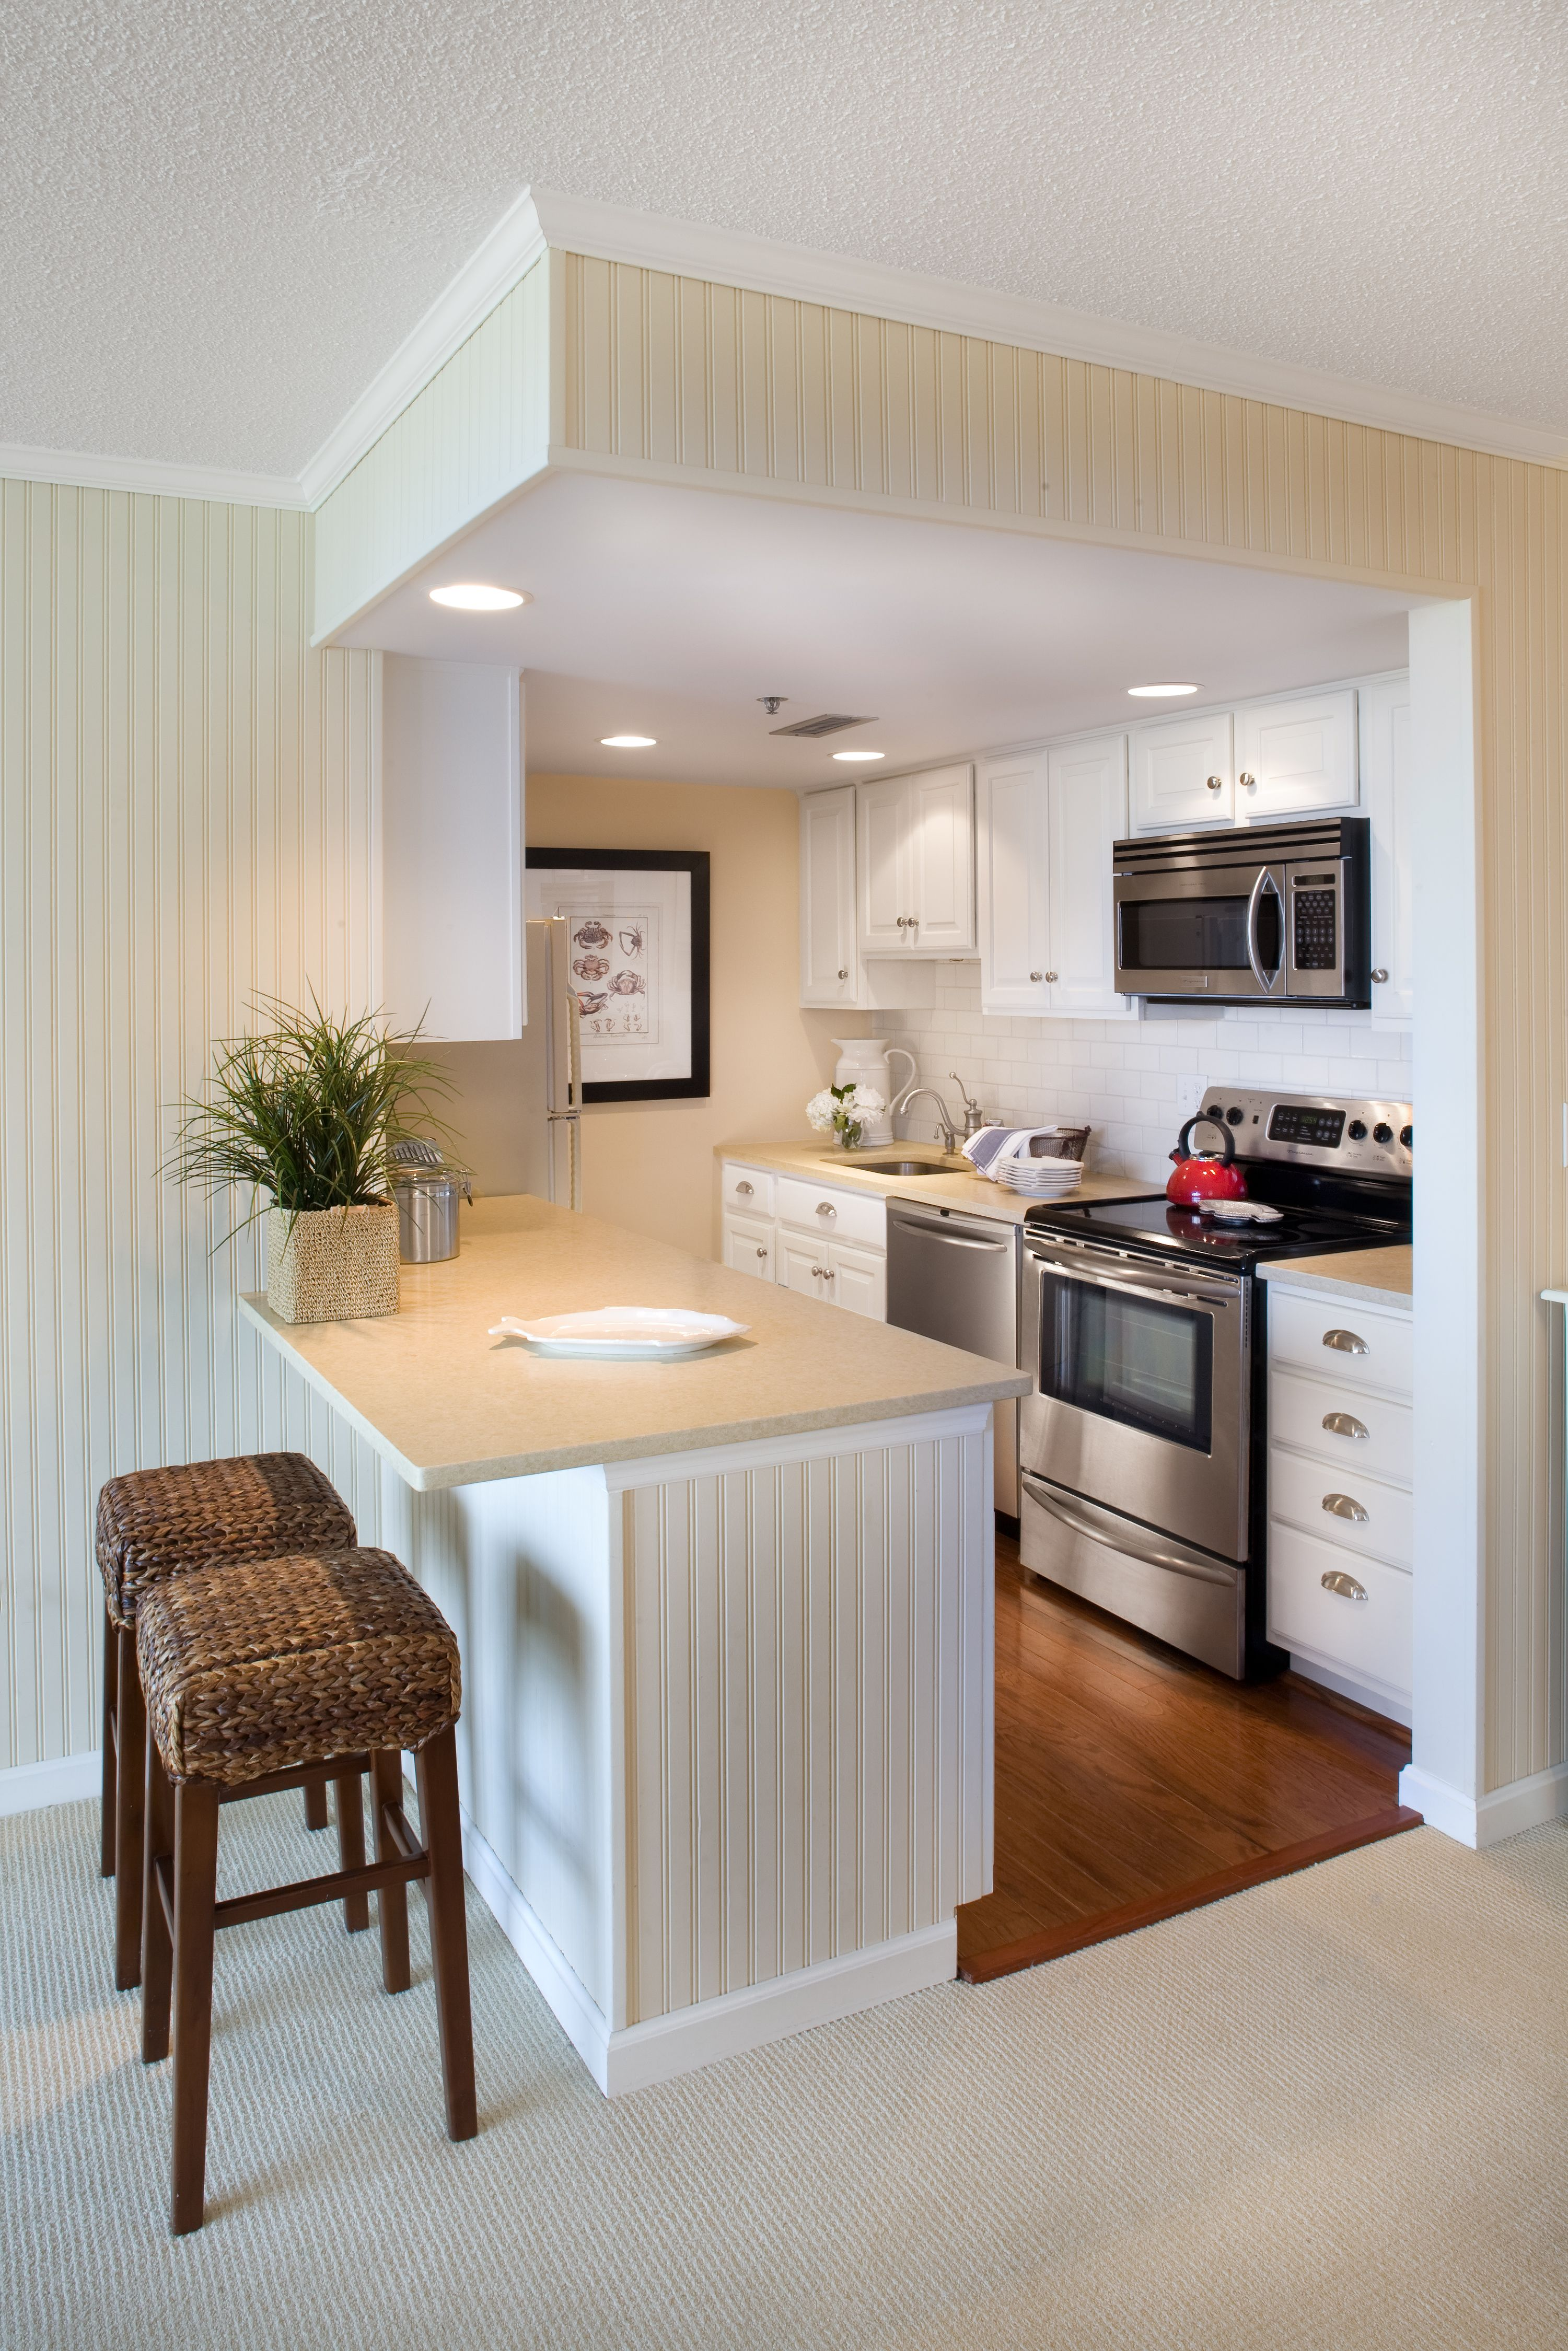 Small but perfect for this beach front condo kitchen designed by kristin peake interiors also rh pinterest